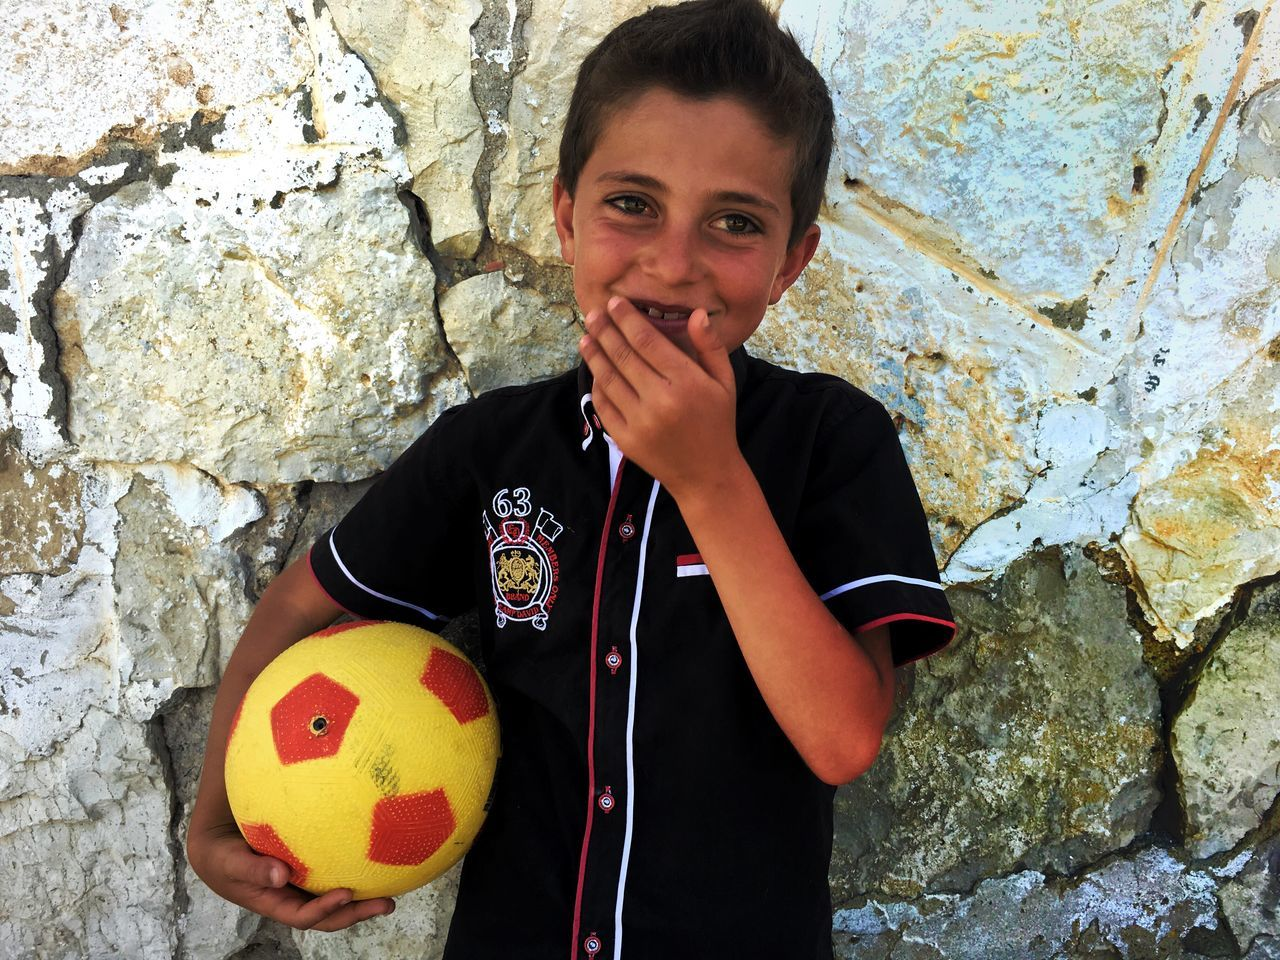 looking at camera, portrait, childhood, boys, one person, real people, soccer ball, leisure activity, holding, soccer, smiling, standing, playing, happiness, outdoors, day, one boy only, human hand, close-up, people